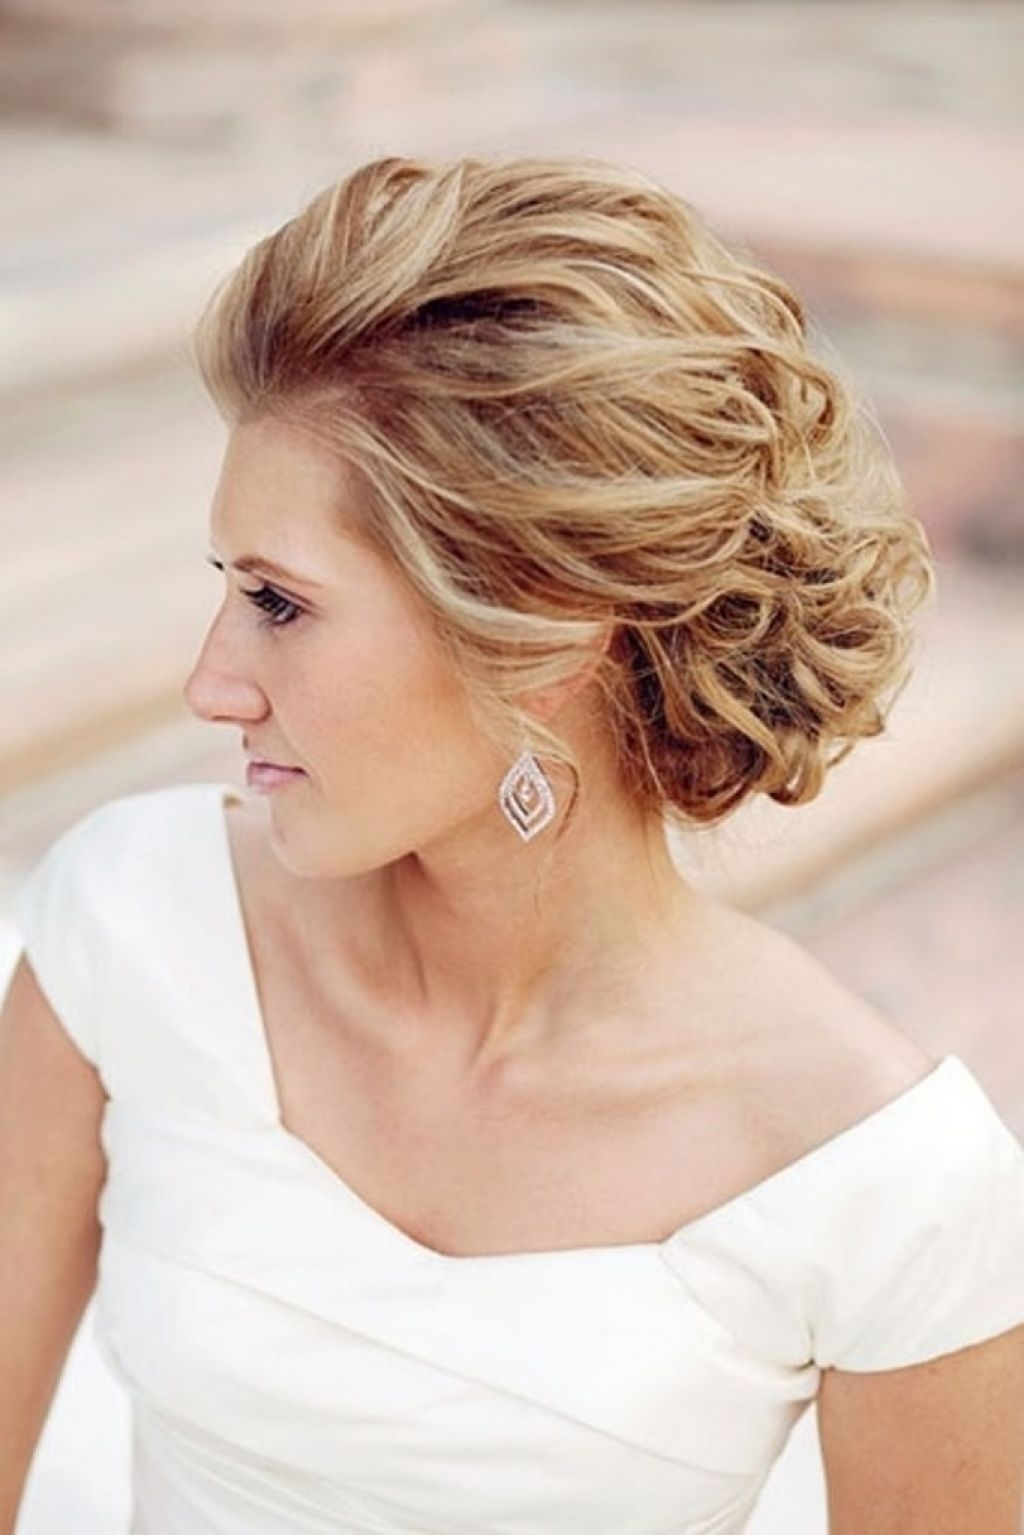 Widely Used Short Wedding Hairstyles For Bridesmaids Intended For Bridesmaid Hairstyles For Medium Length Hair Wedding Design Ideas (View 12 of 15)